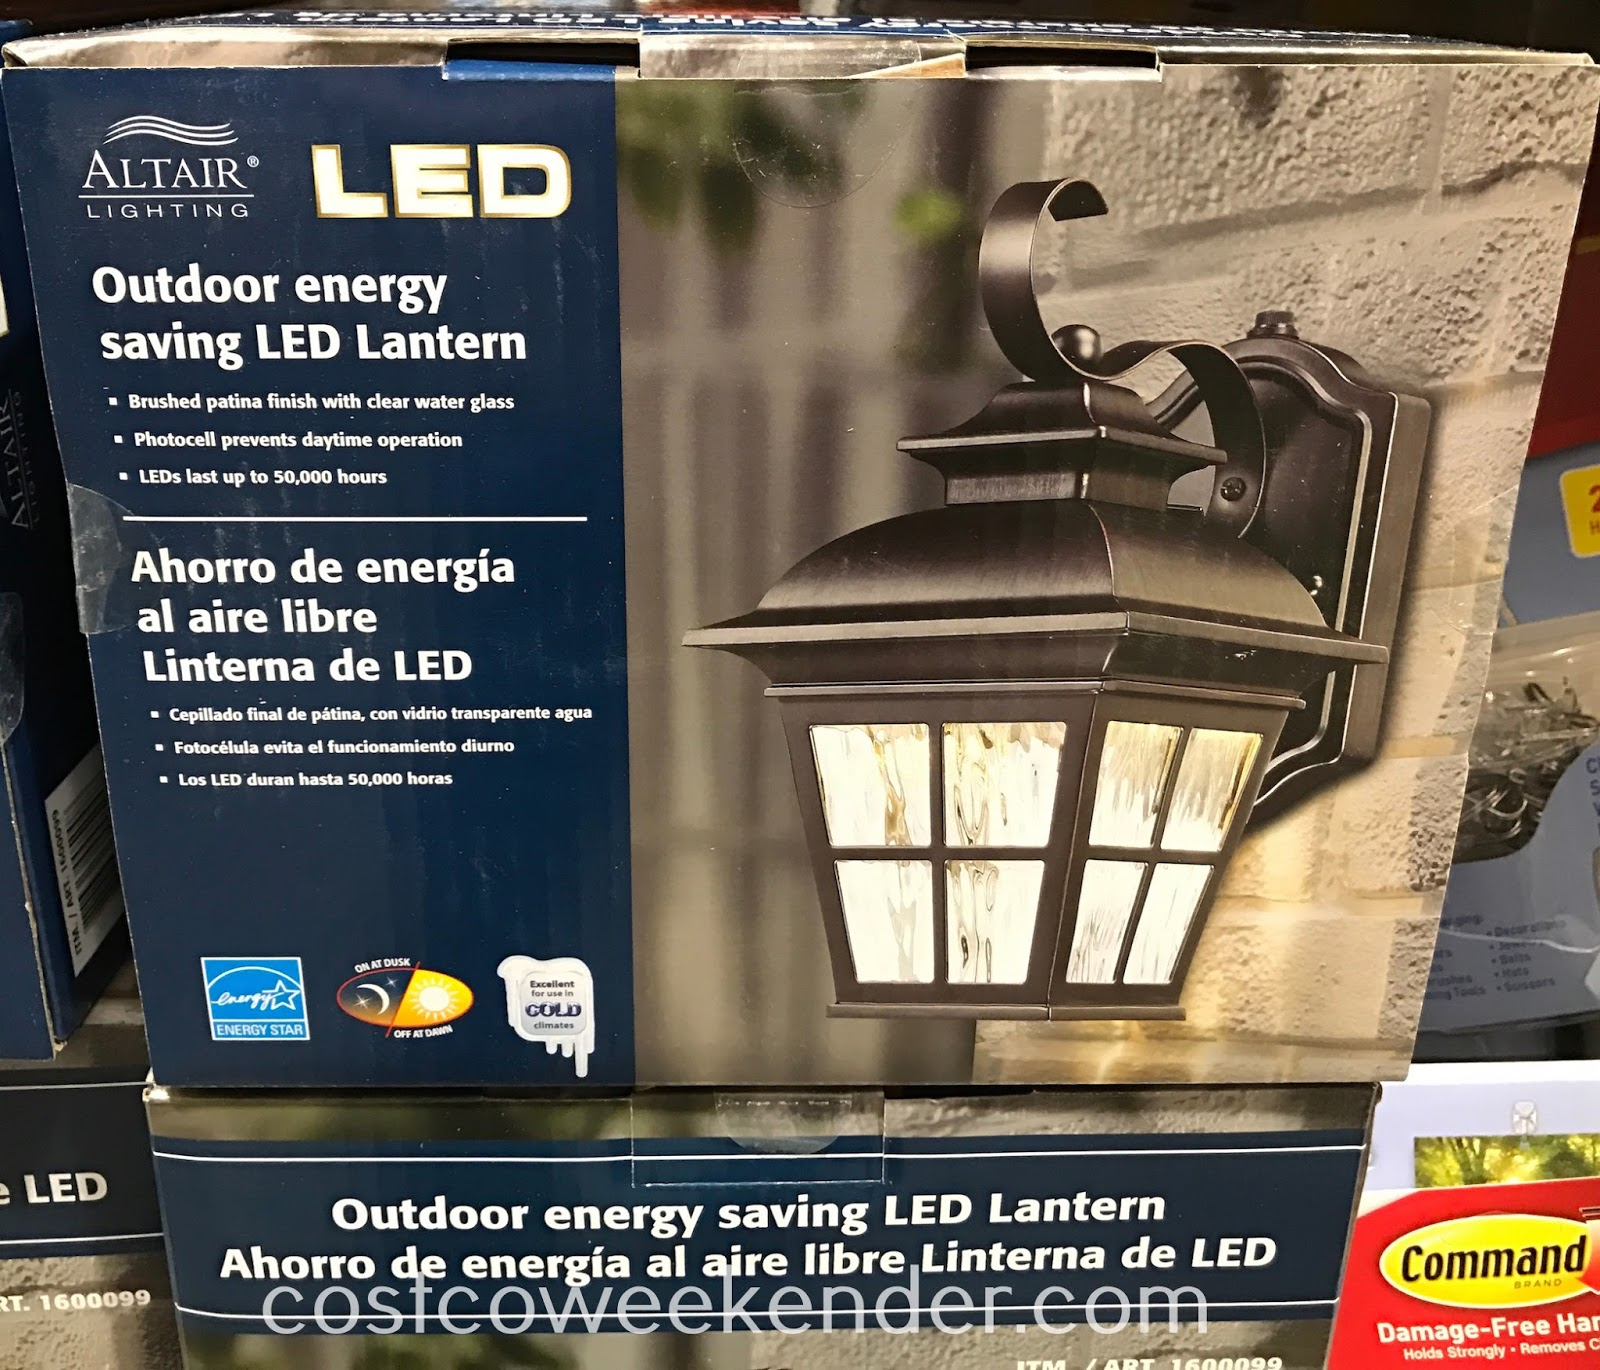 Altair Outdoor Led Coach Light Costco Weekender